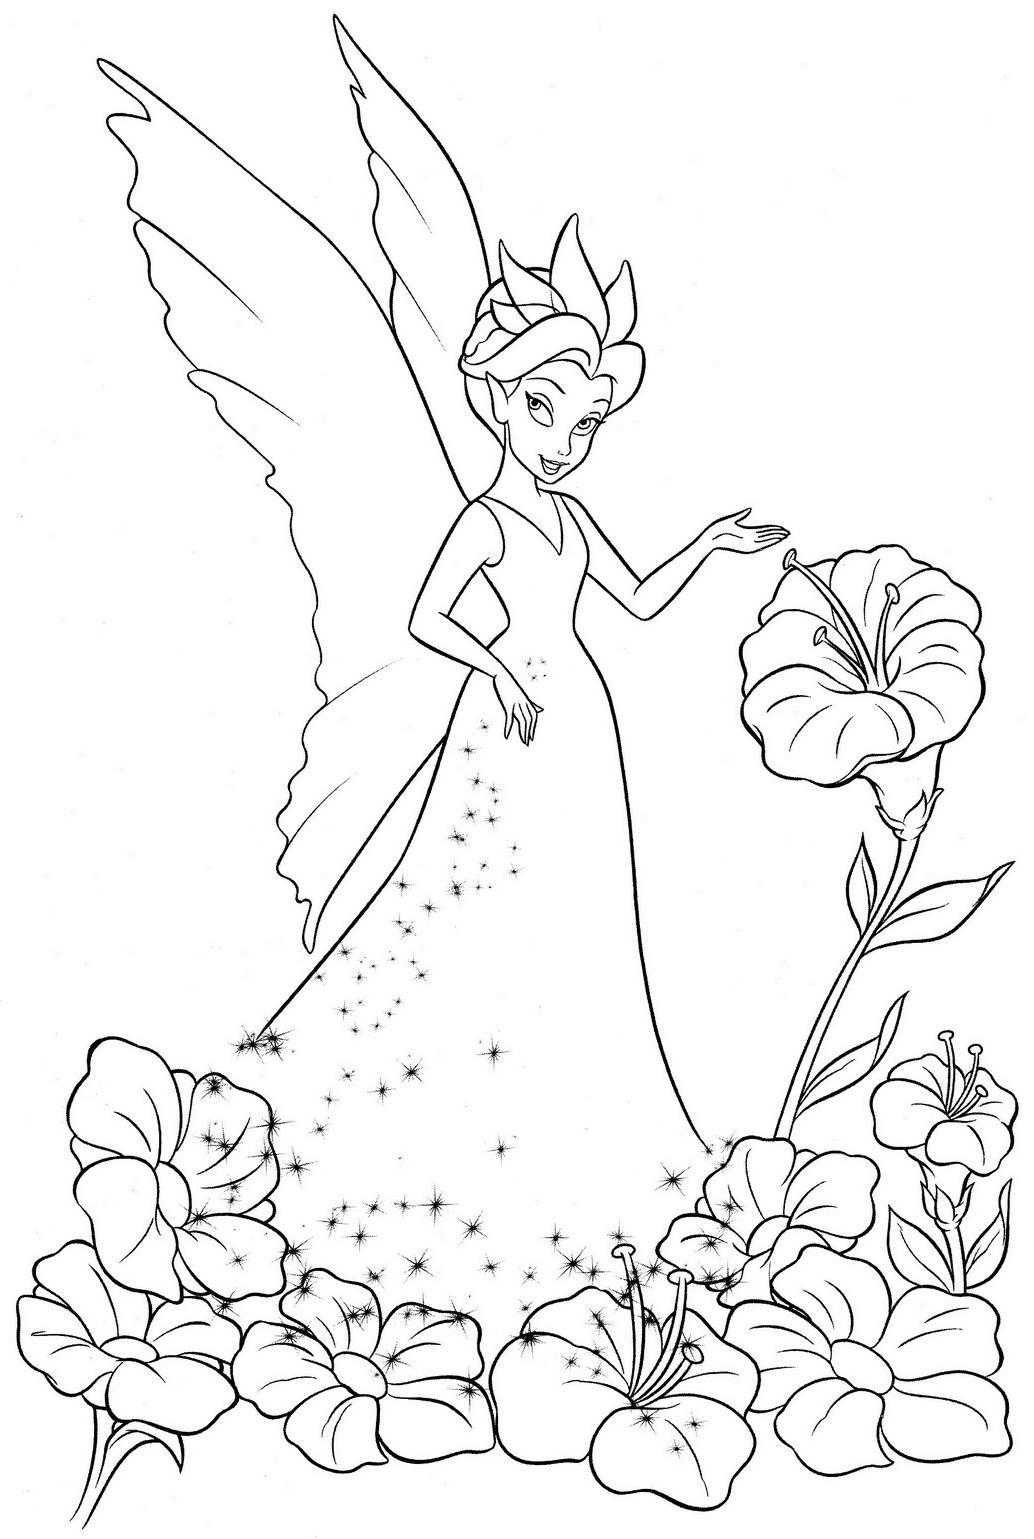 1034x1539 Coloring Pages Of Tinkerbell And Friends